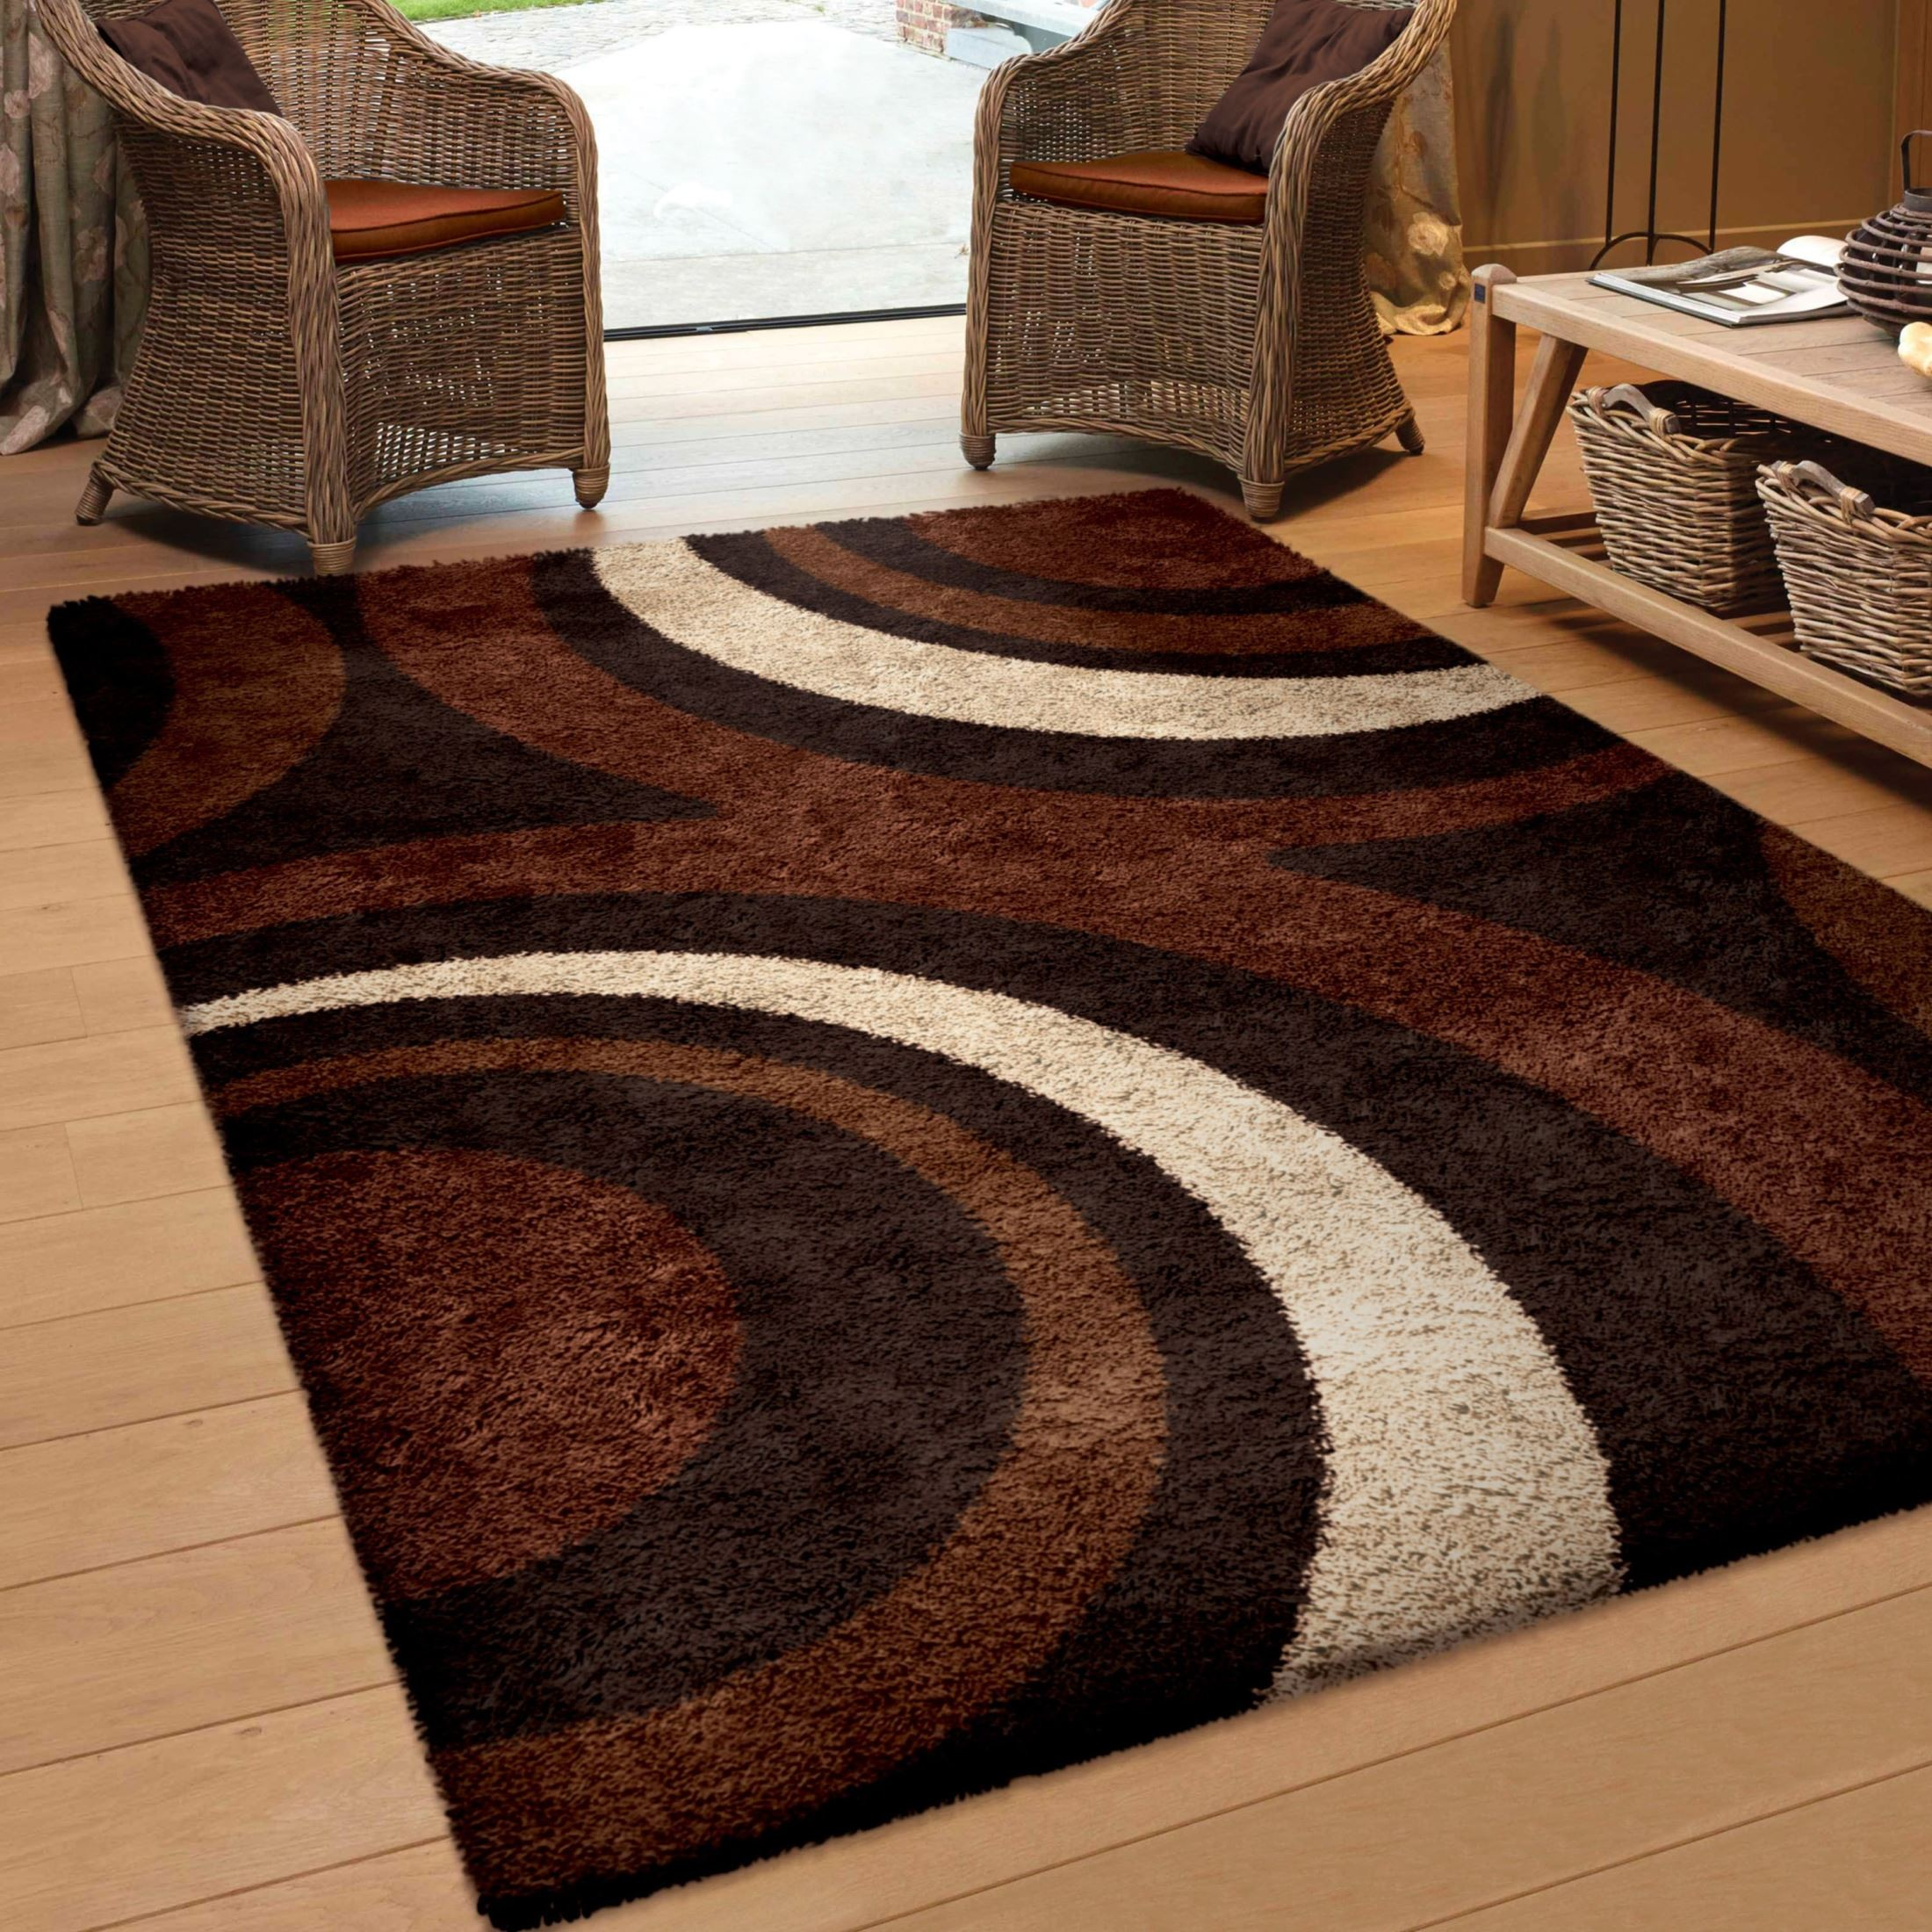 Ring Of Fire Mocha Medium Rug From Orian 3700 5x8